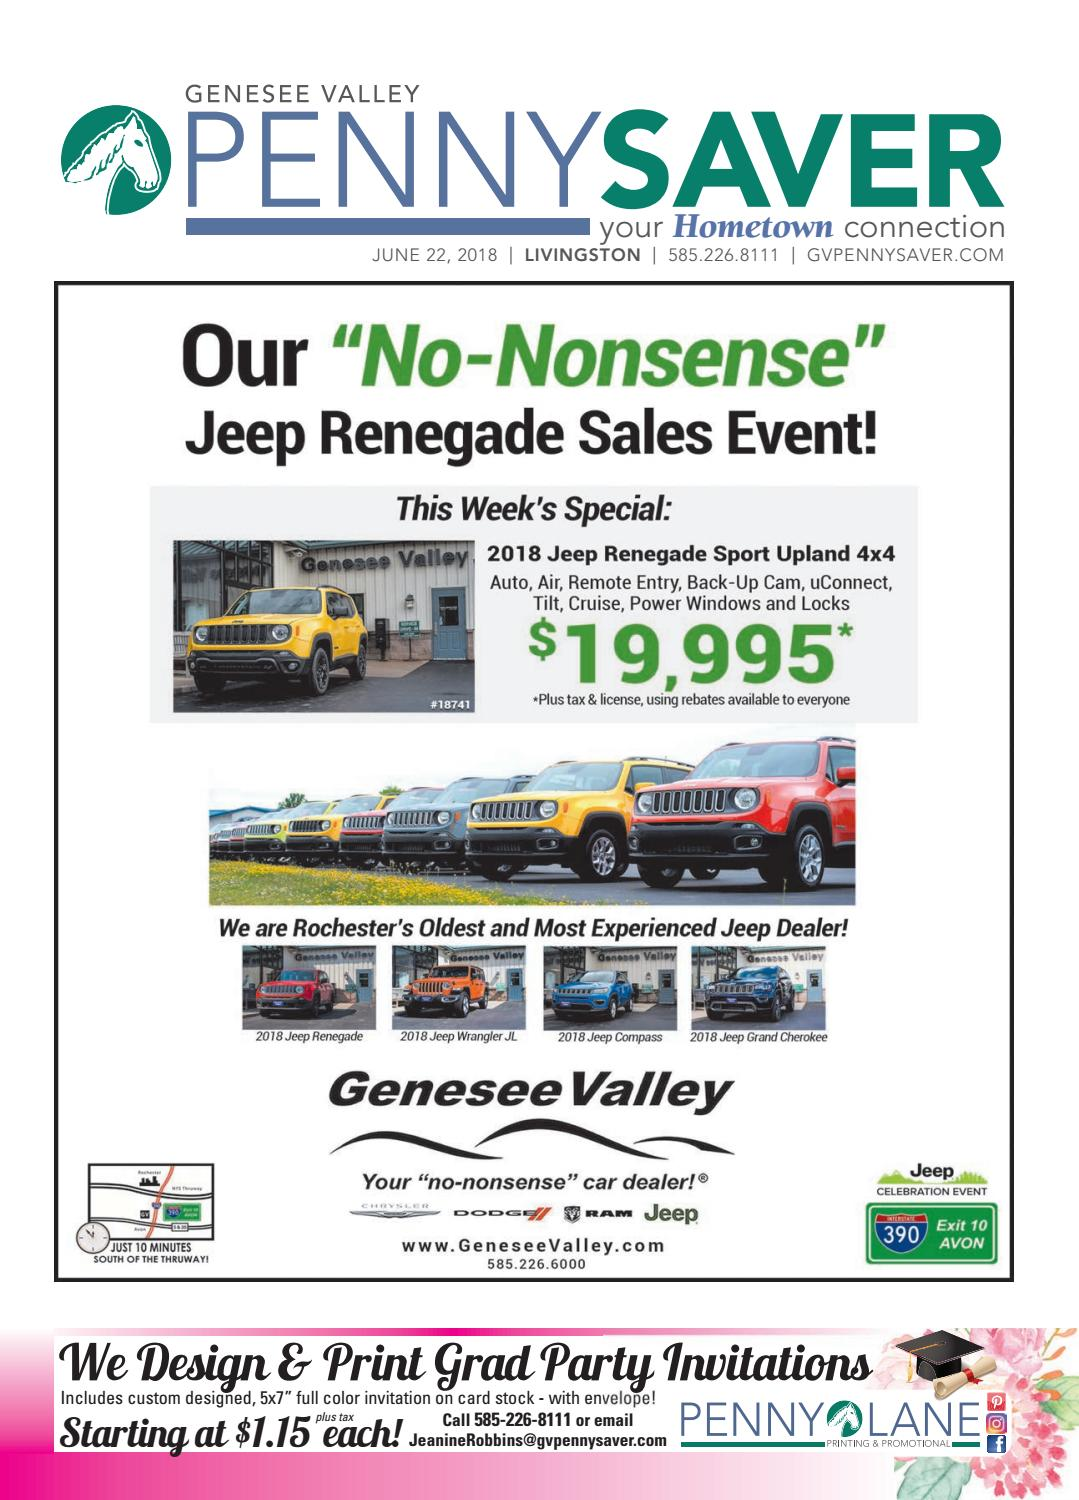 Livingston Edition - The Genesee Valley Penny Saver 6/22/18